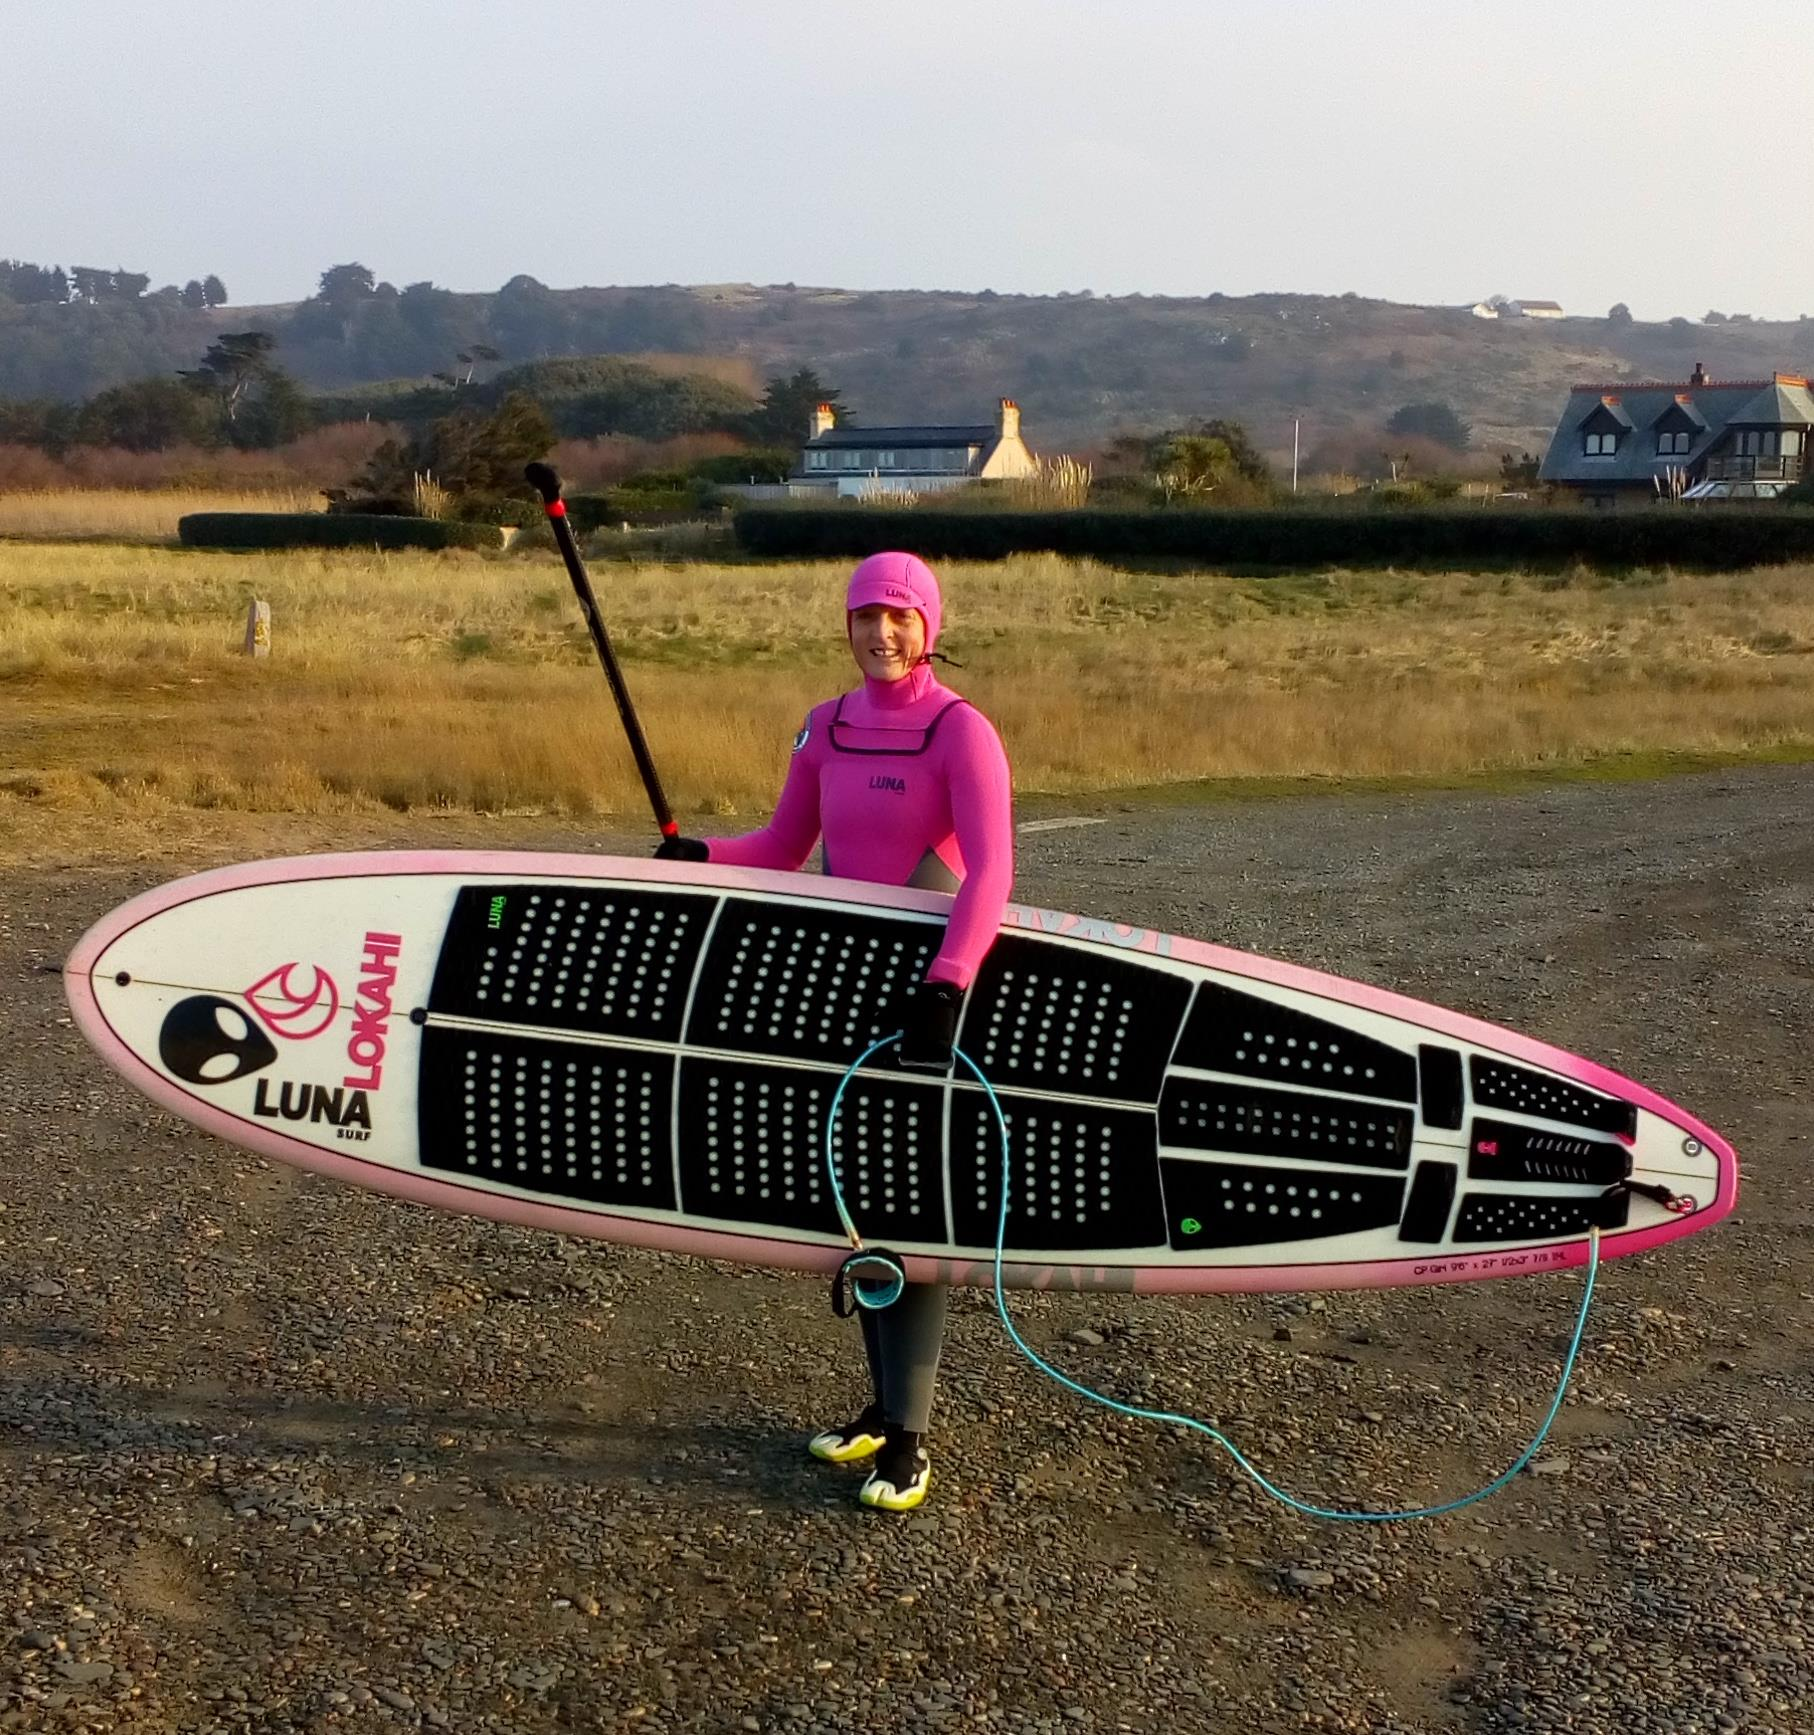 ladies-pink-lunasurf-winter-wetsuit-full-grip-jersey-sup.jpg